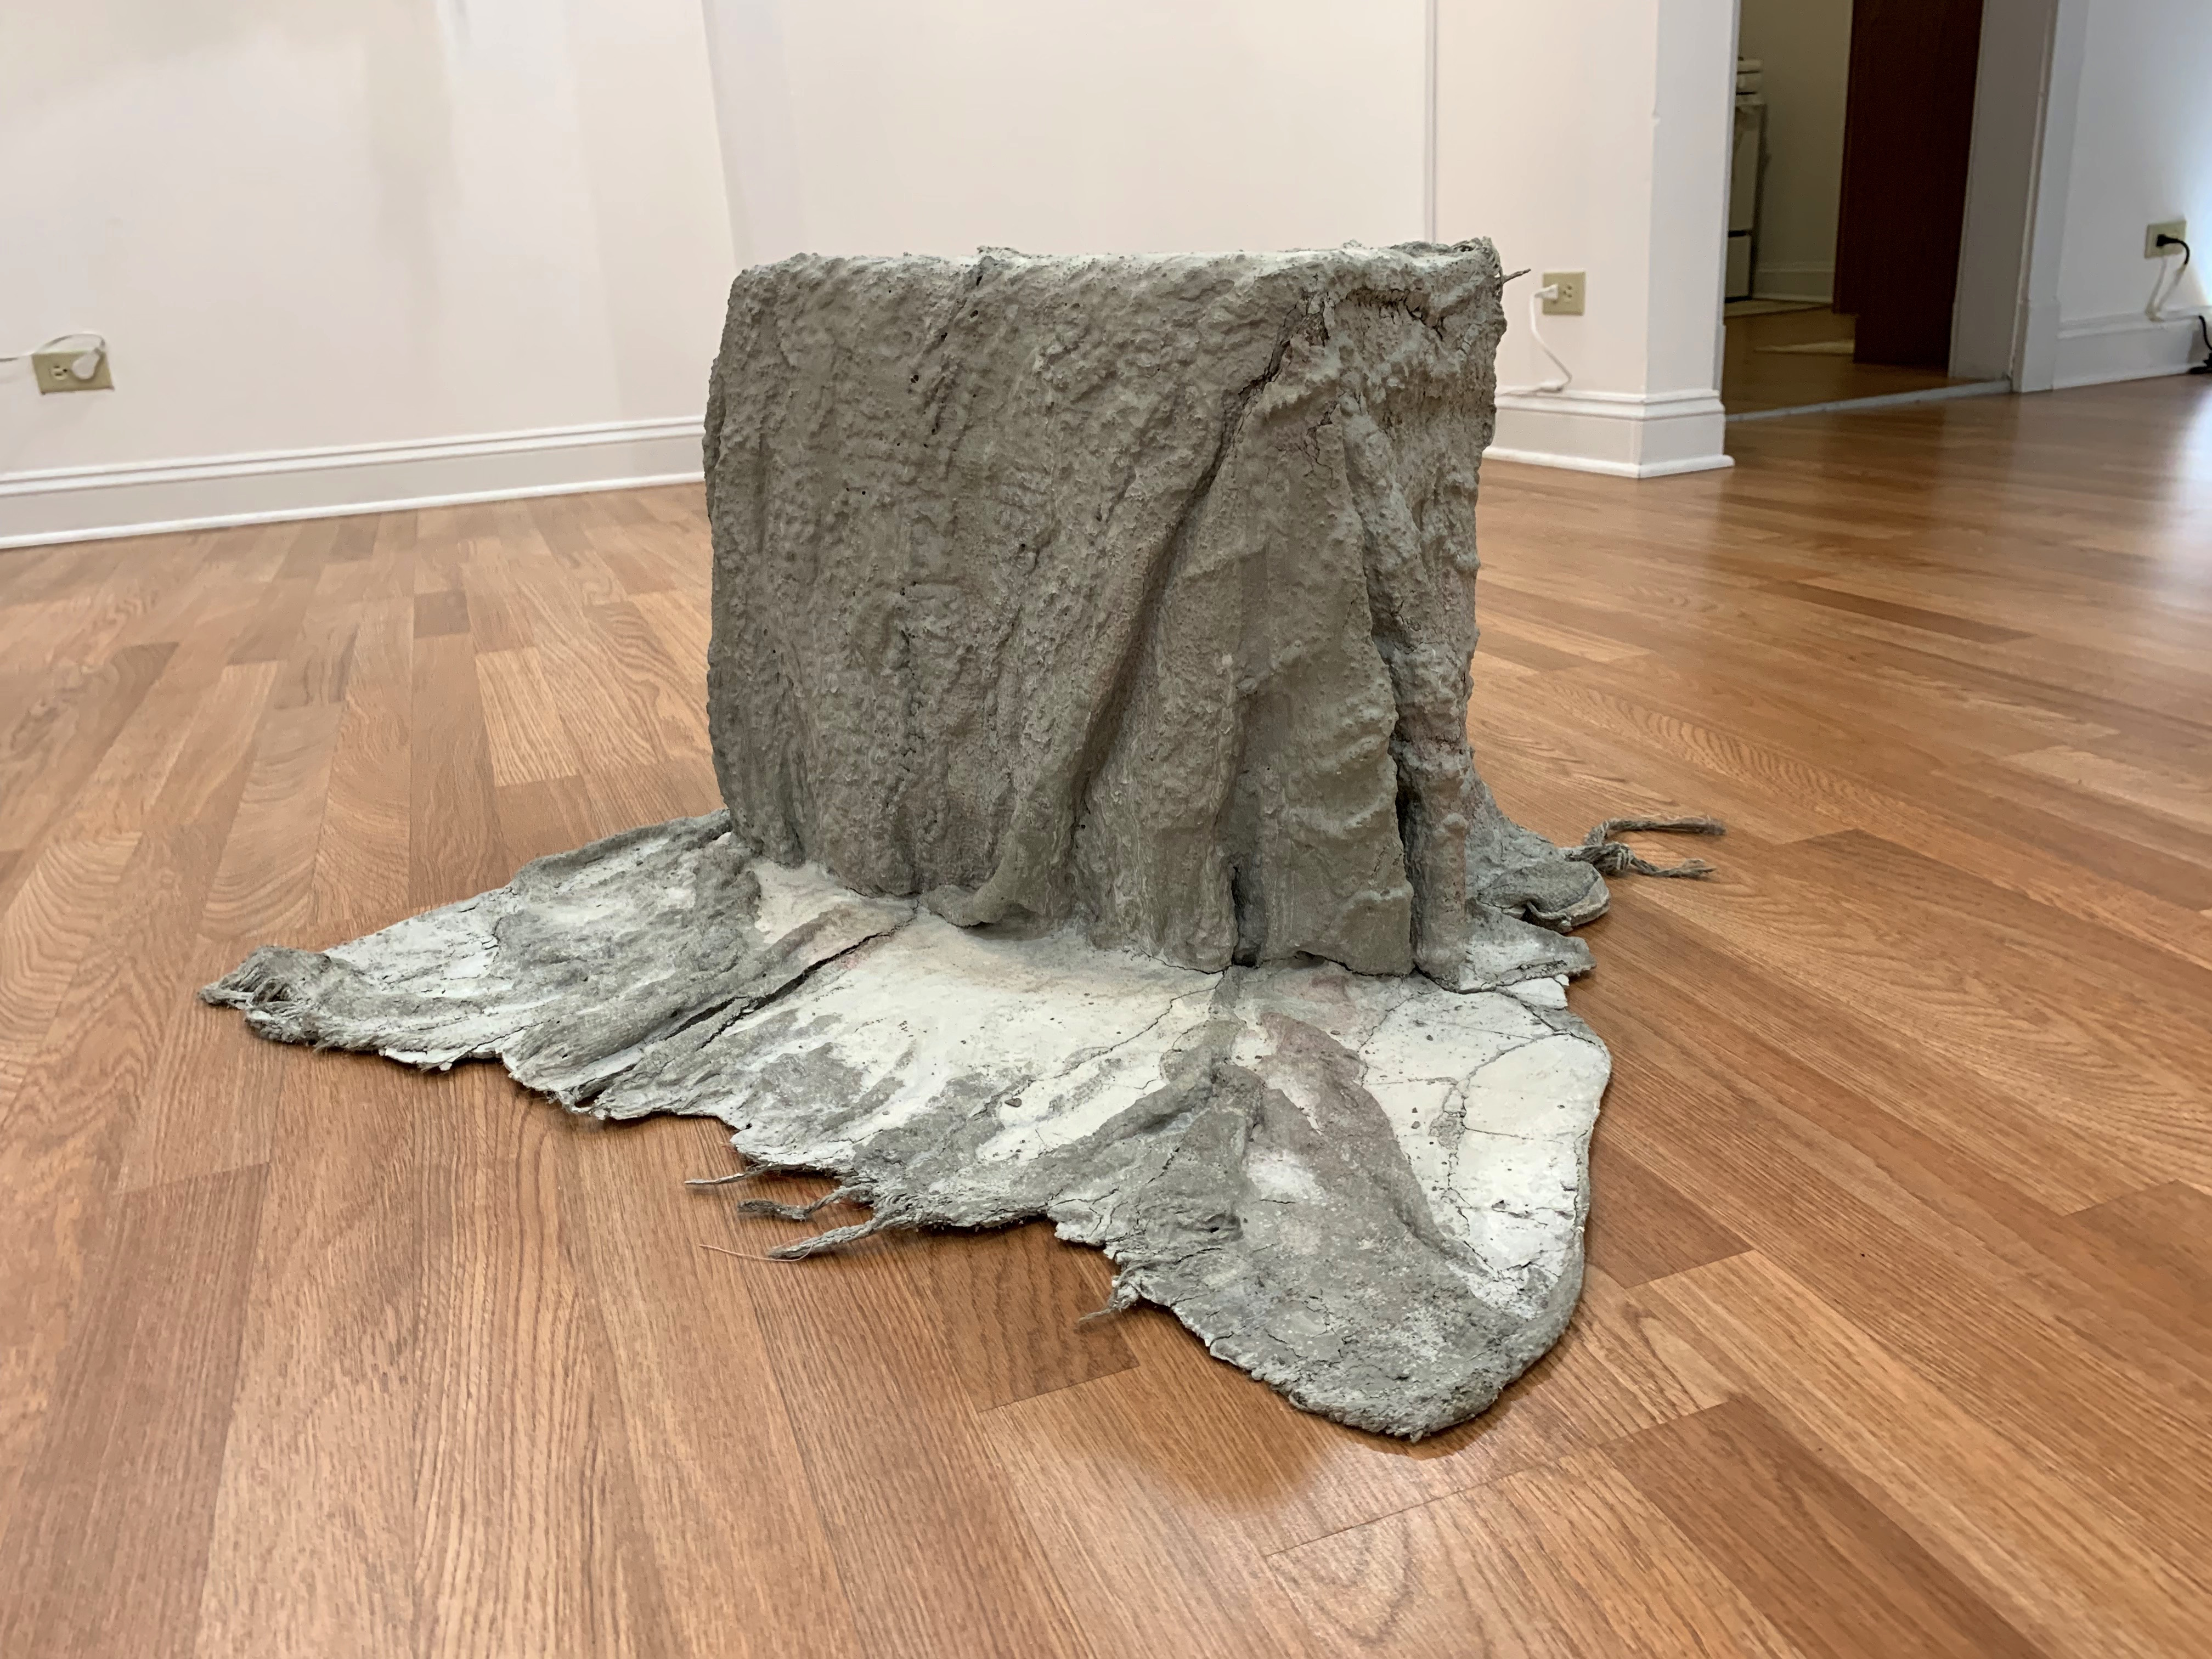 A grey textile artwork shaped in a box-like form sitting on the ground.